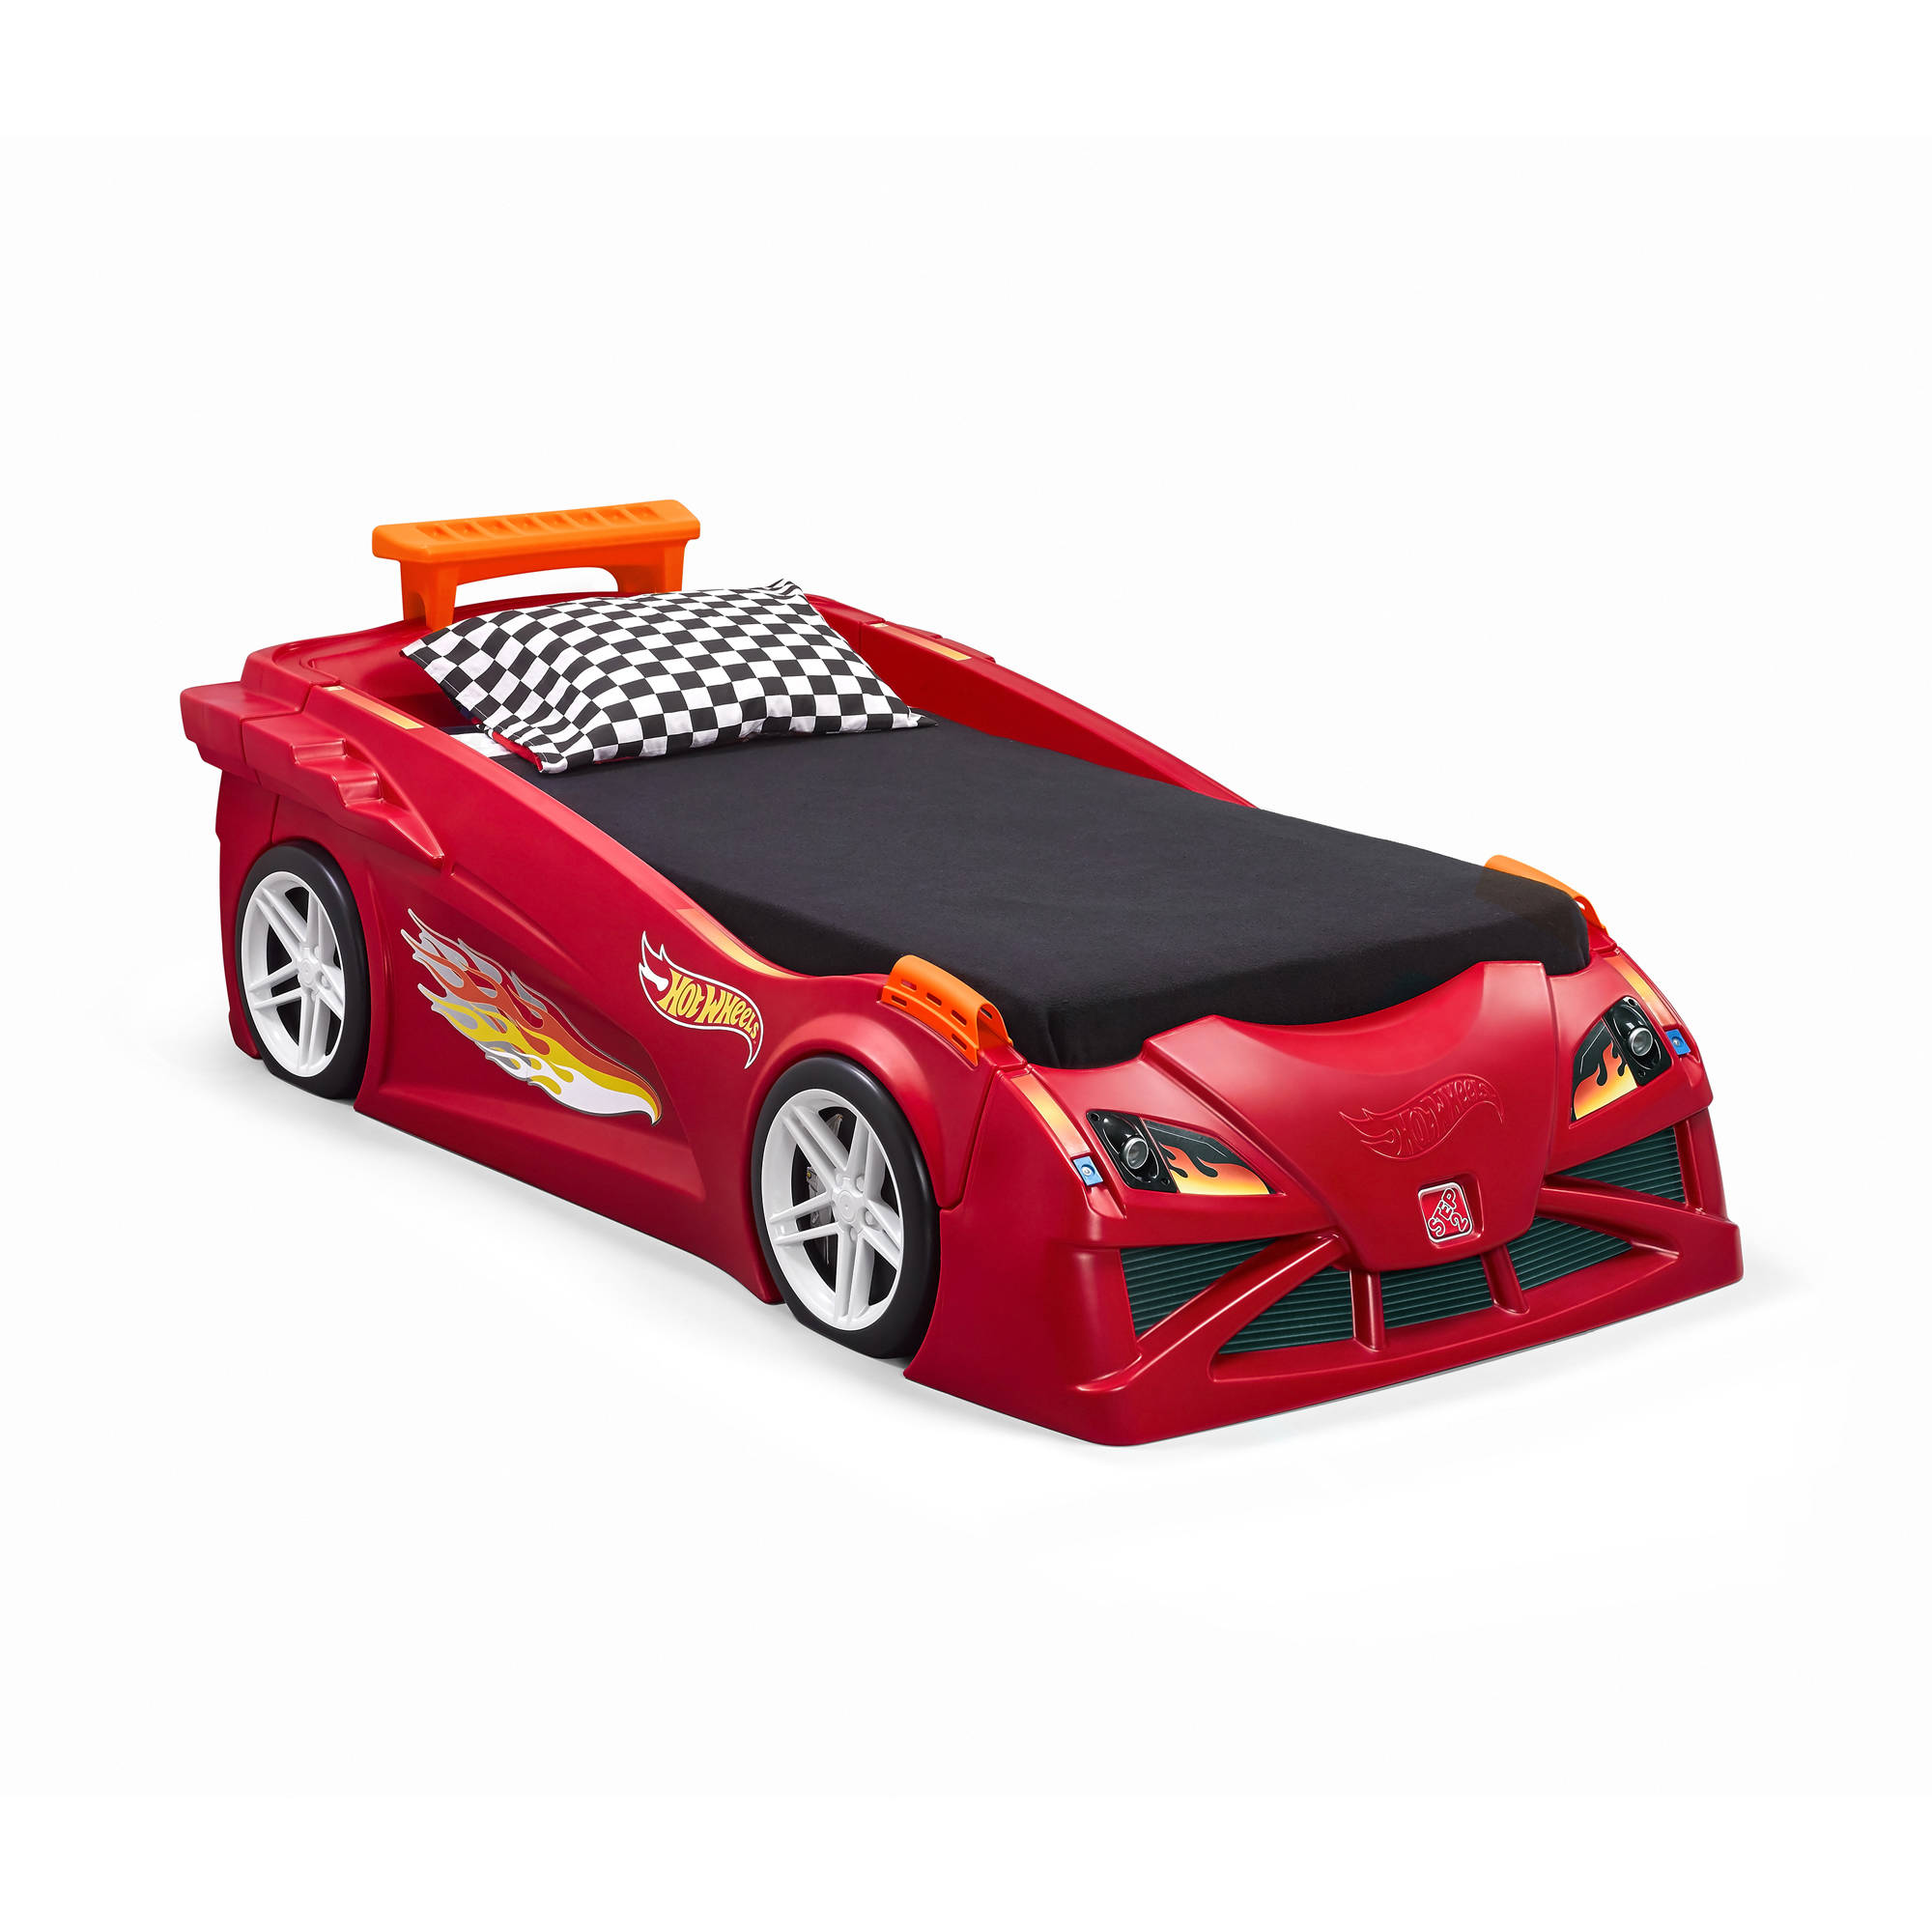 Step2 Hot Wheels Convertible Toddler to Twin Bed, Red